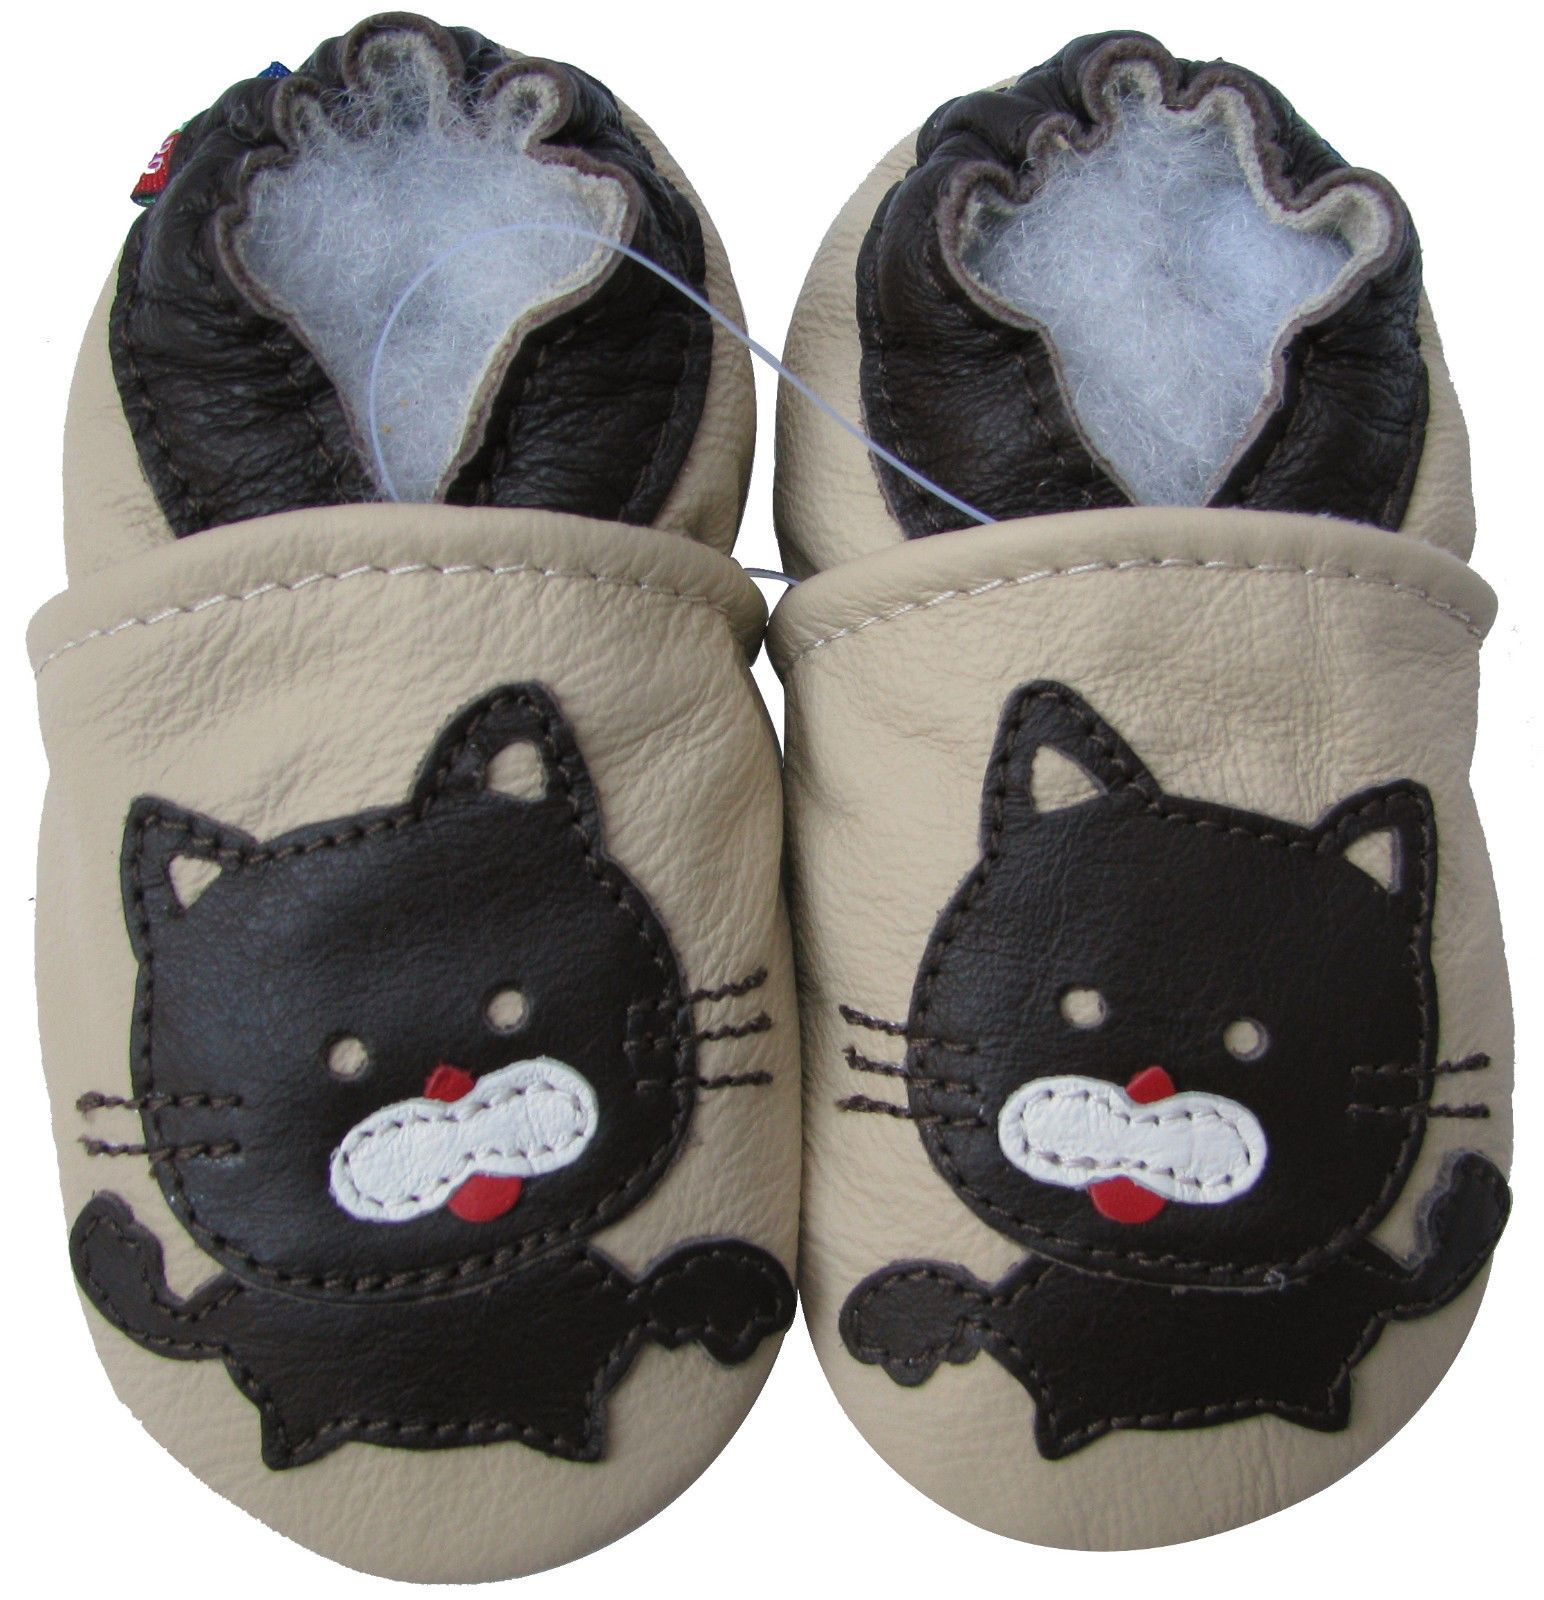 Carozoo Baby boy Soft Sole Leather Infant Toddler Kids Shoes Black Cat Cream